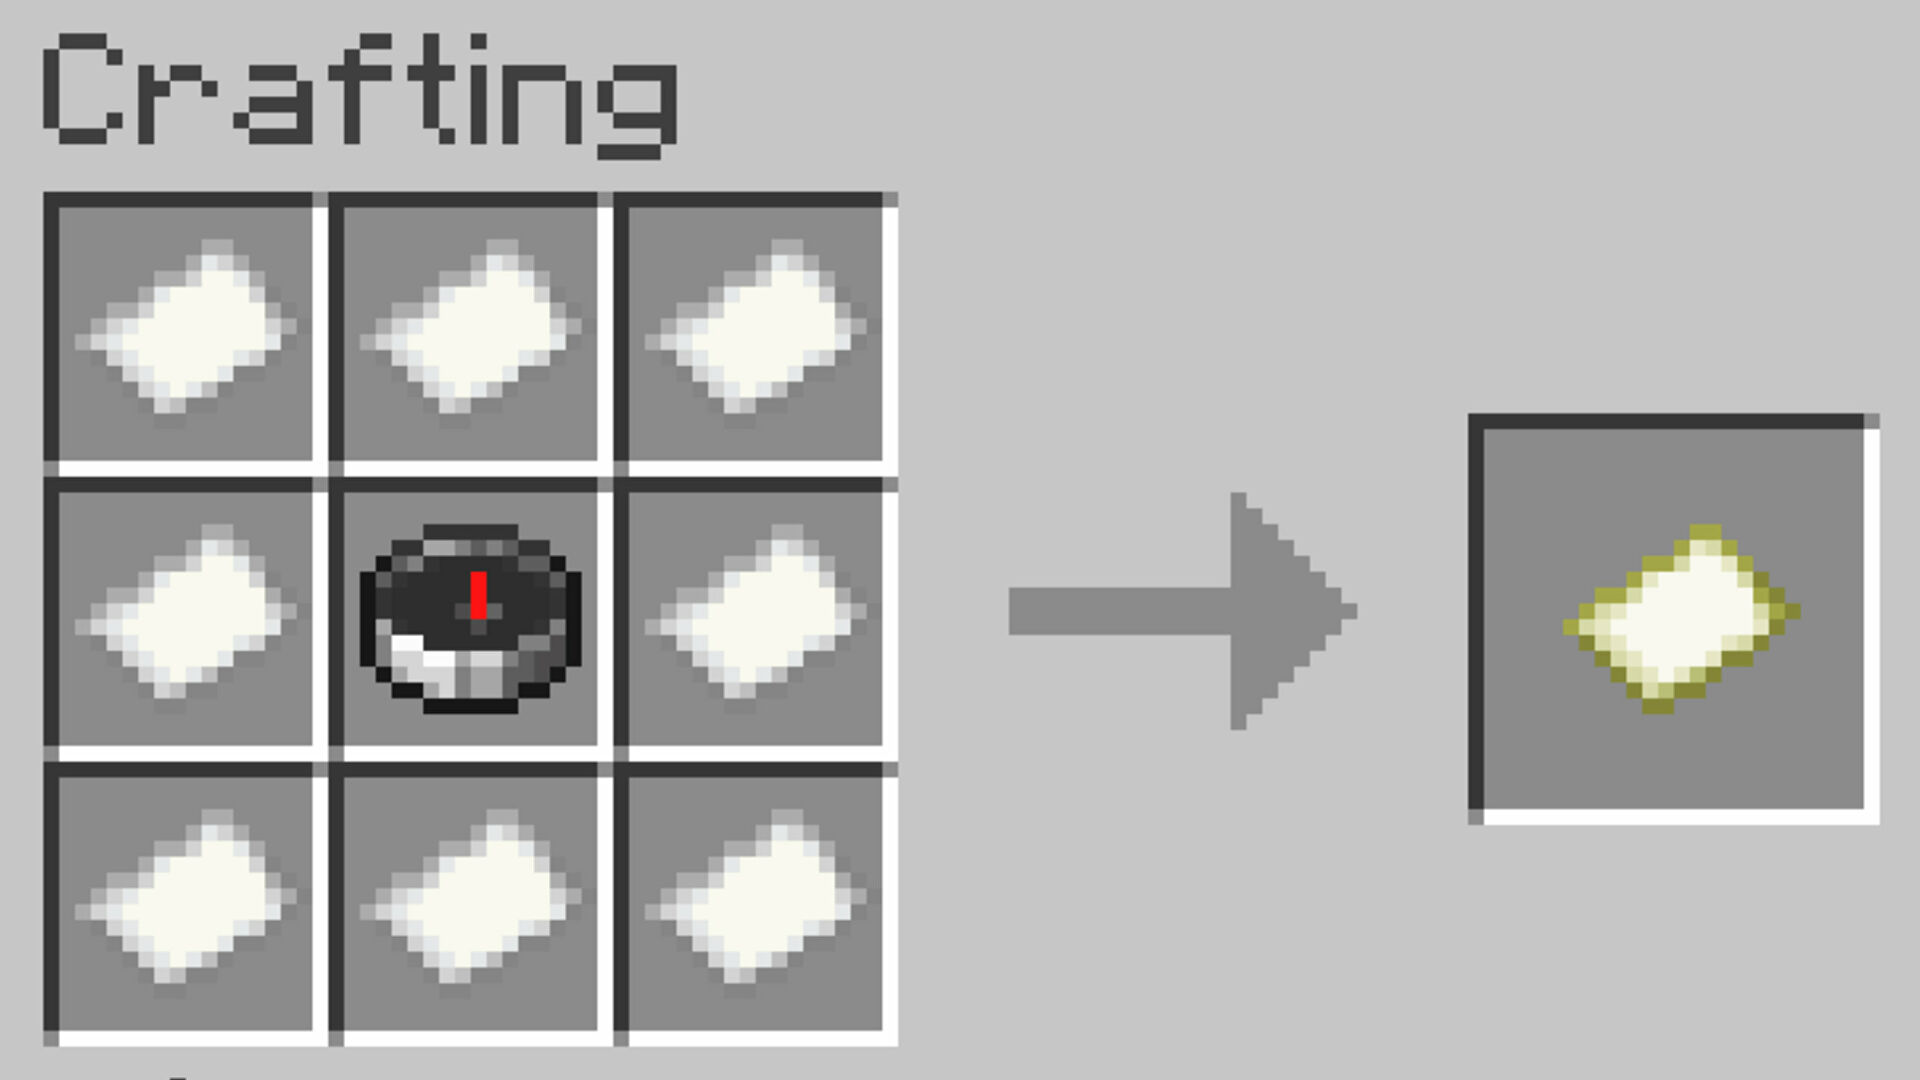 The recipe for creating a Map in Minecraft Java Edition.